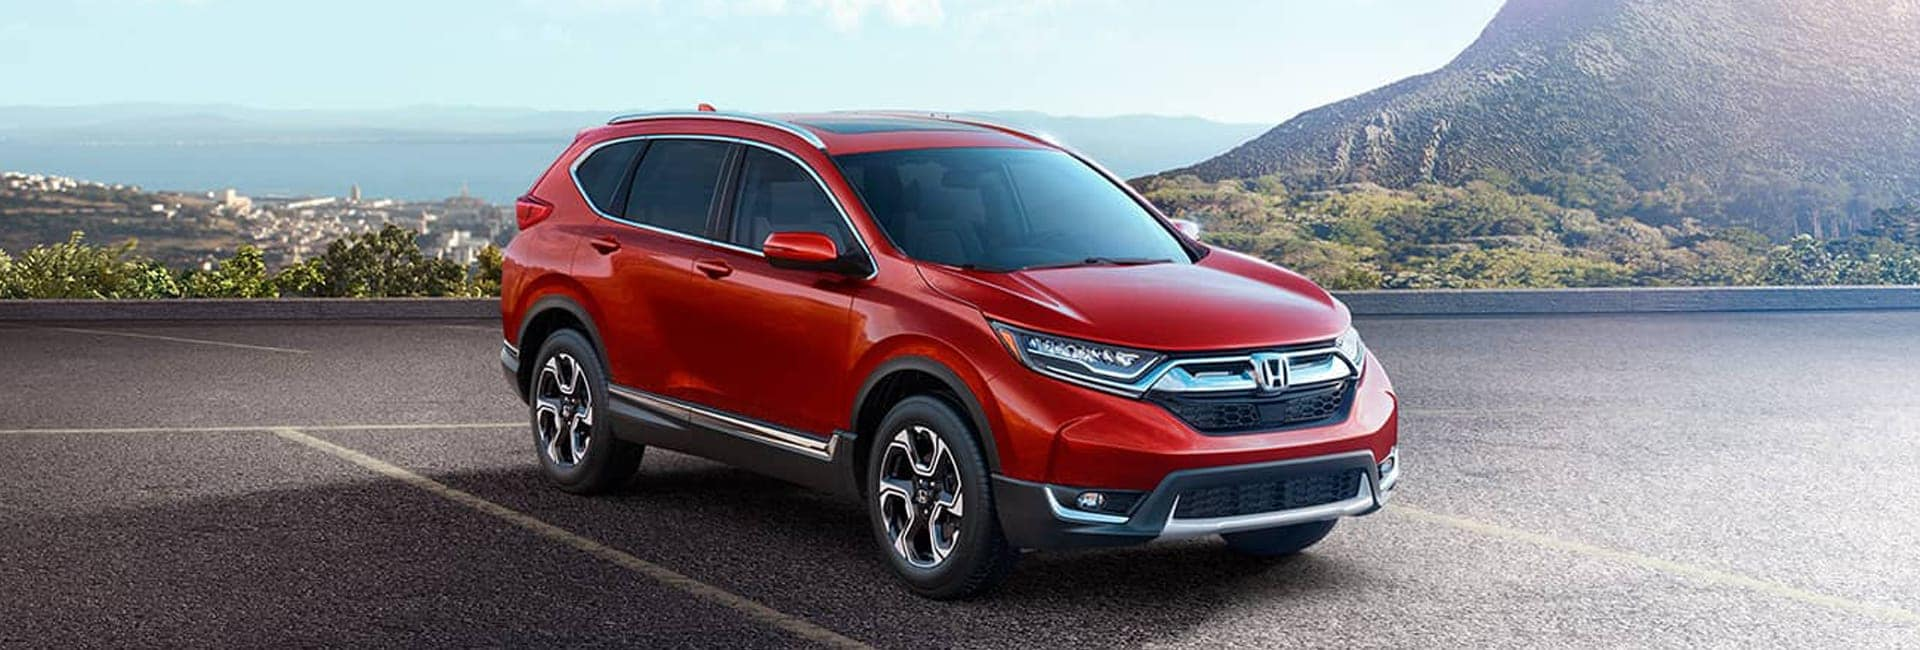 2019 Honda CR-V Exterior Features